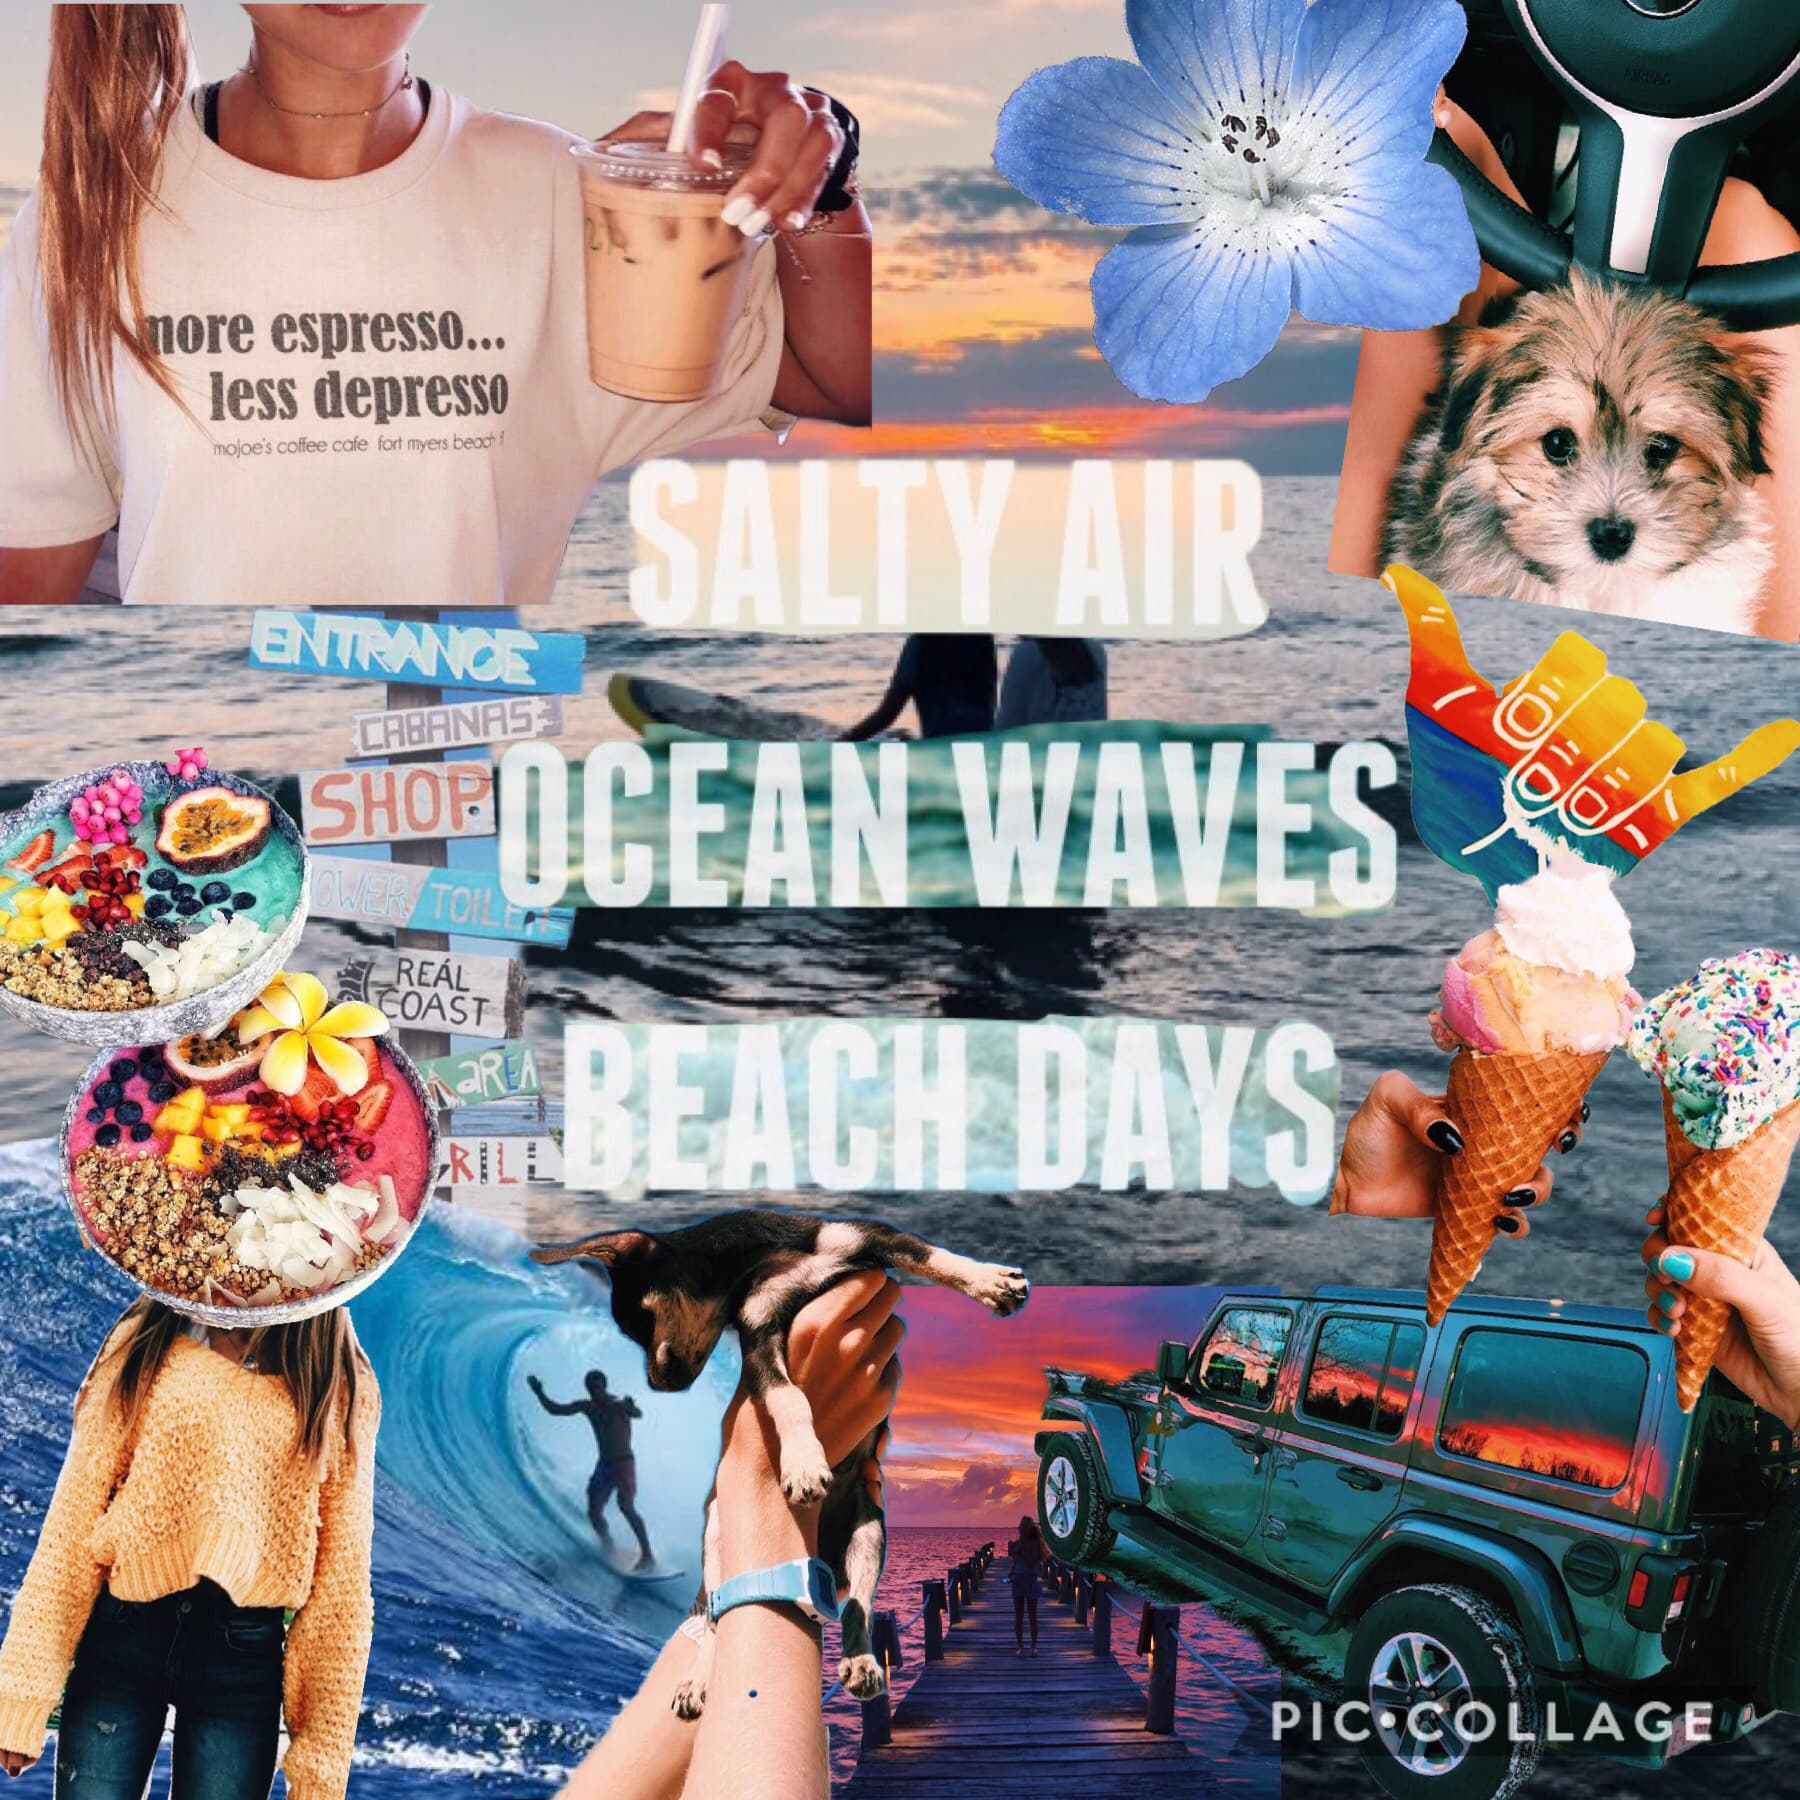 Collage by caliwaves